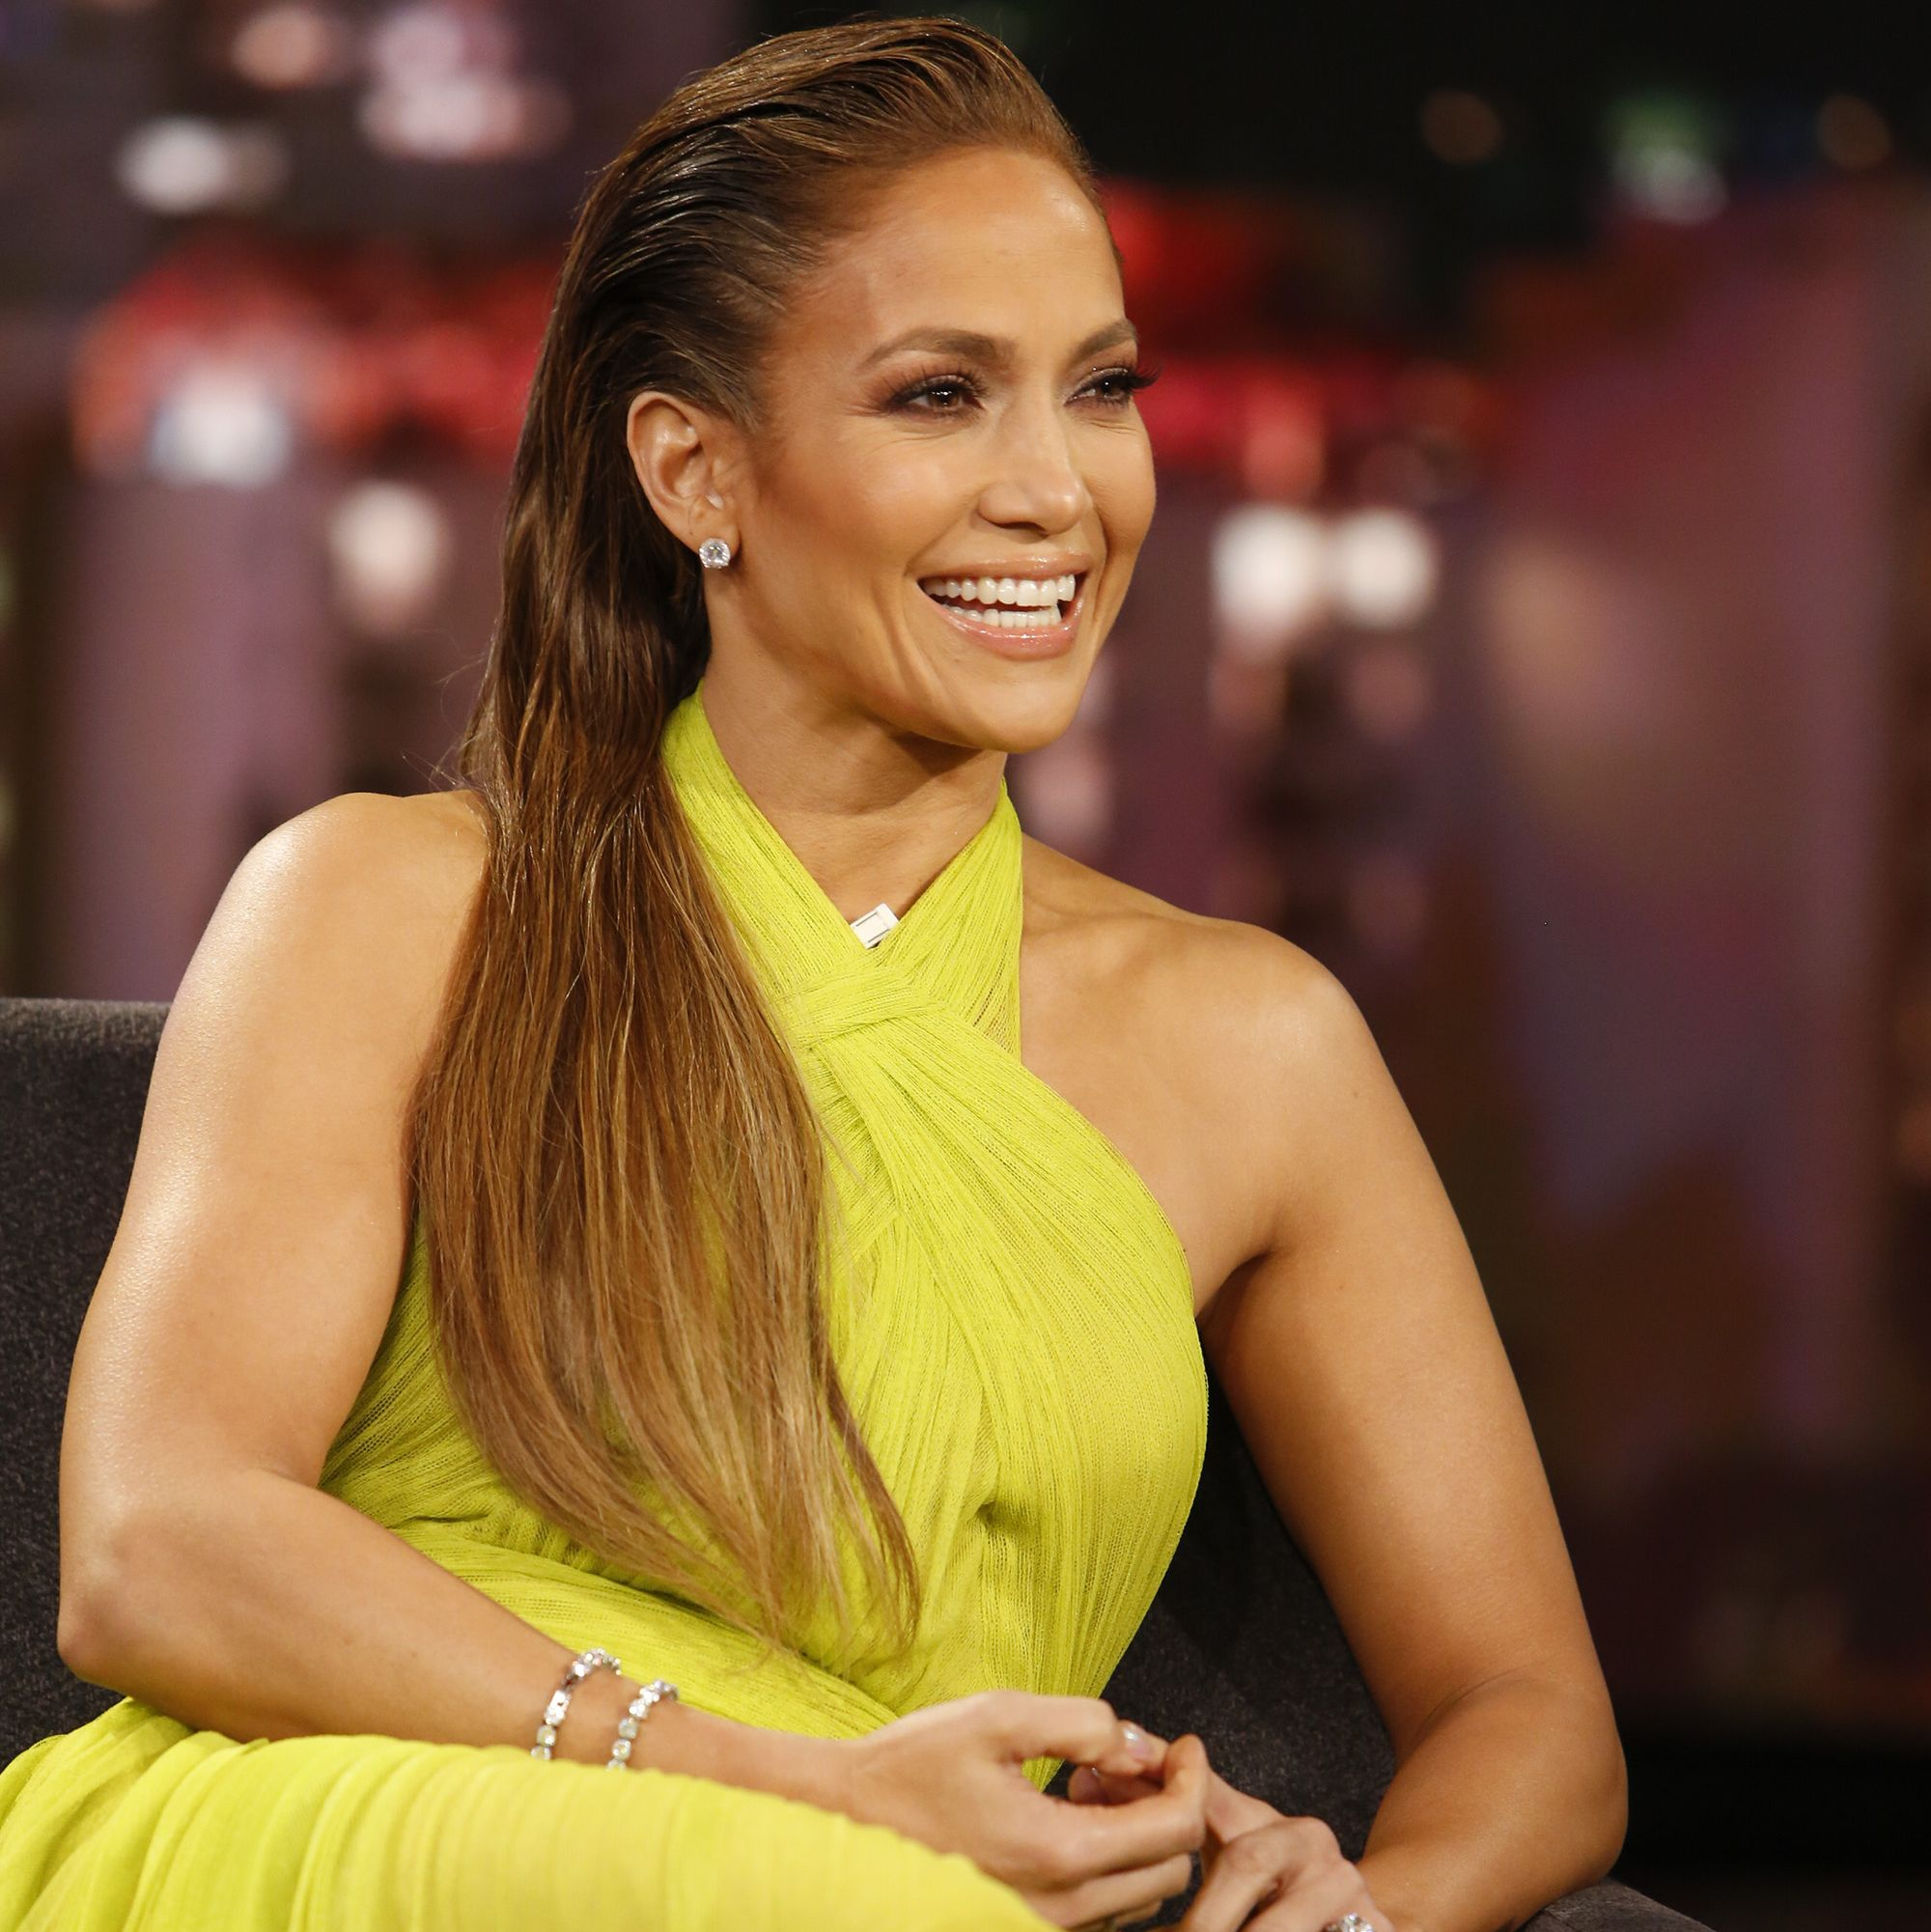 Jennifer Lopez Keeps Saying She Has 'Goosies' On 'World Of Dance,' But What Does That Mean?